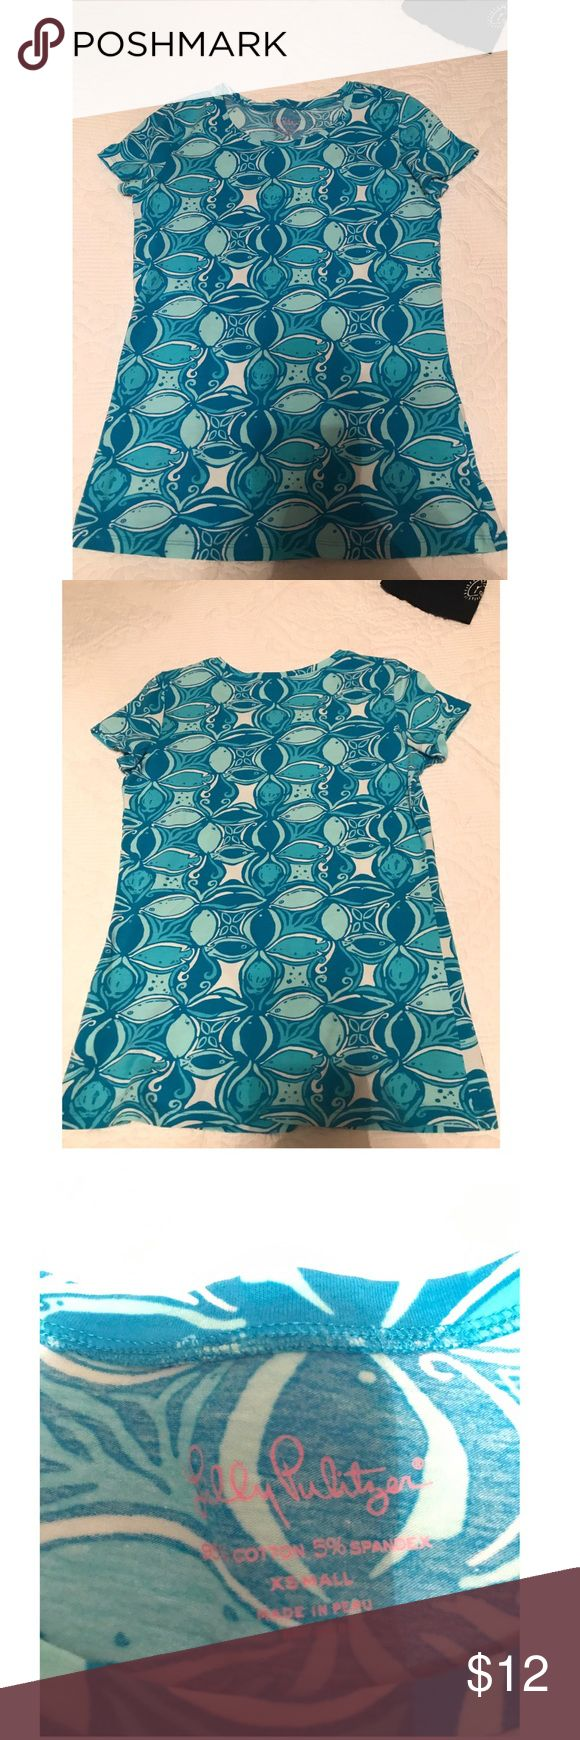 Lilly Pulitzer Shirt Super stretchy material and very comfy! Only wore a few times, in great condition!! Lilly Pulitzer Tops